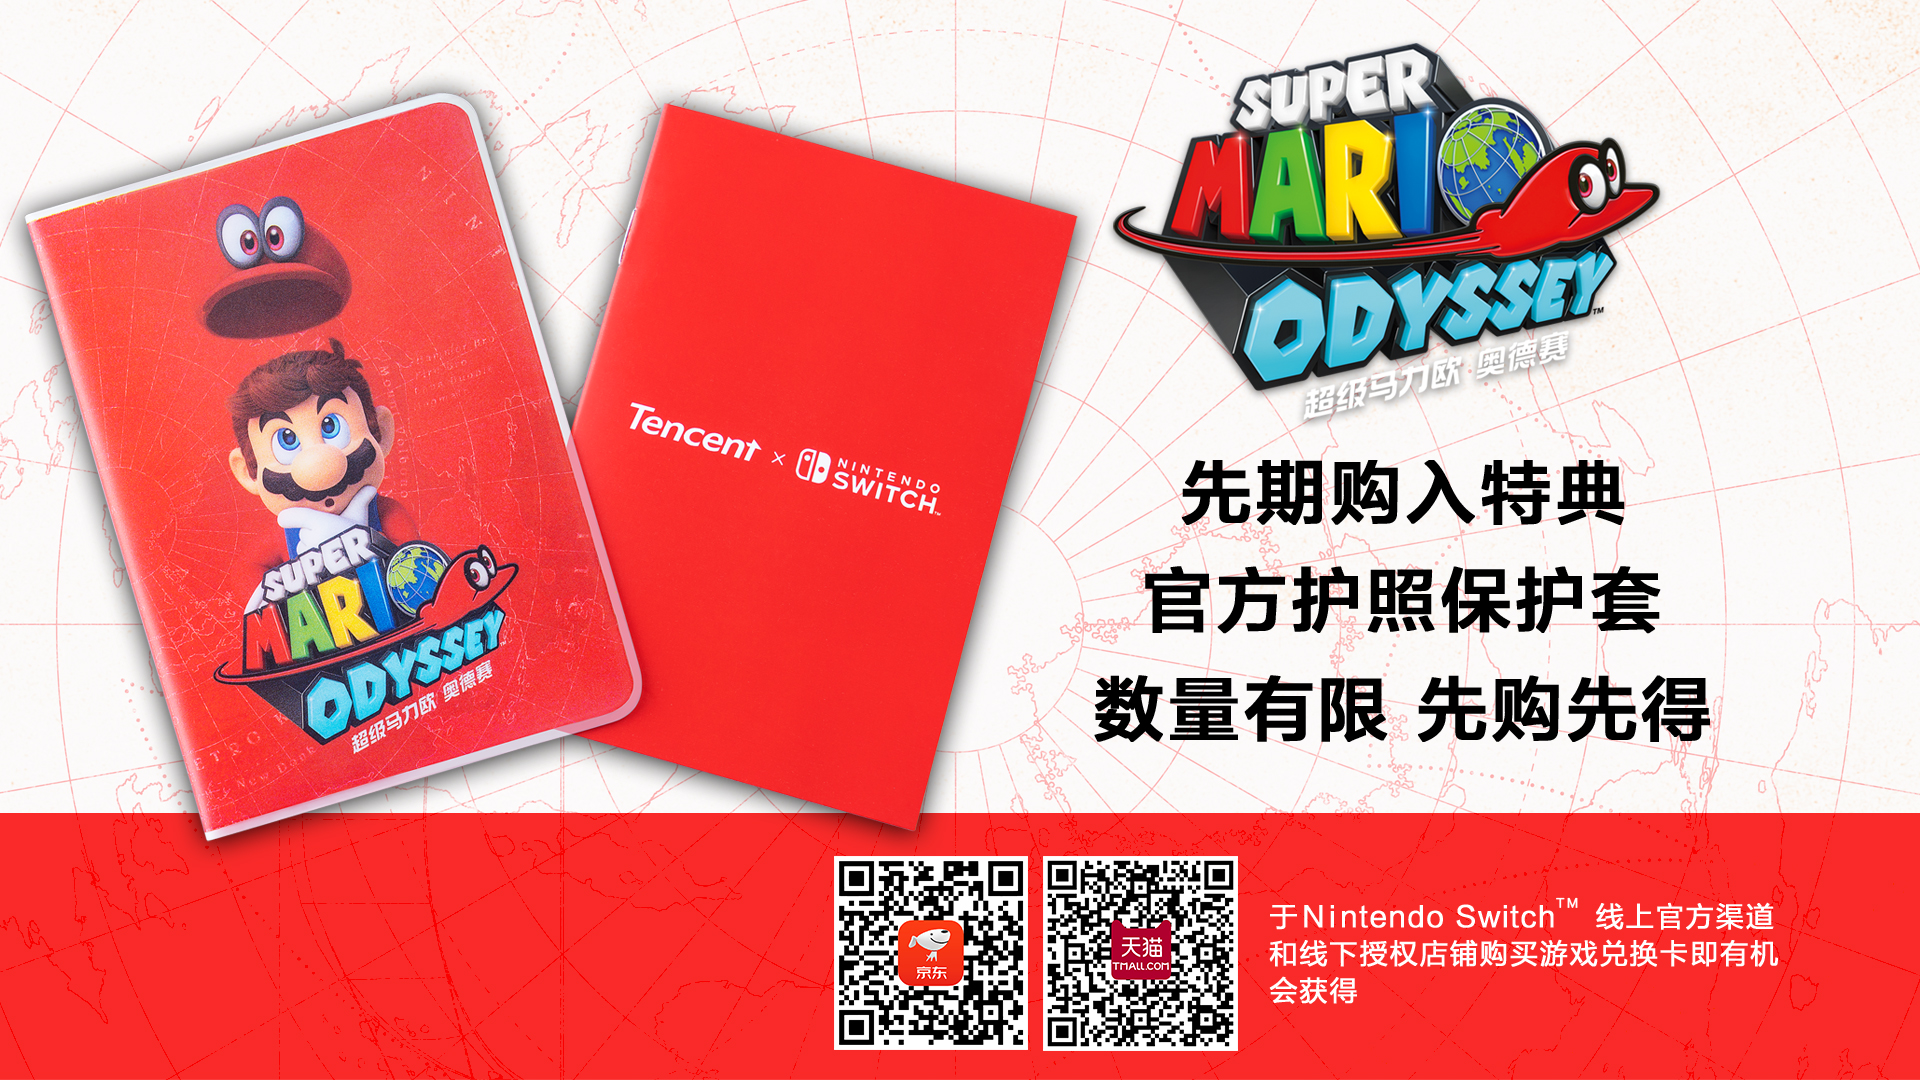 Super Mario Odyssey Mario Kart 8 Deluxe Launching In China On March 16 Nintendo Everything